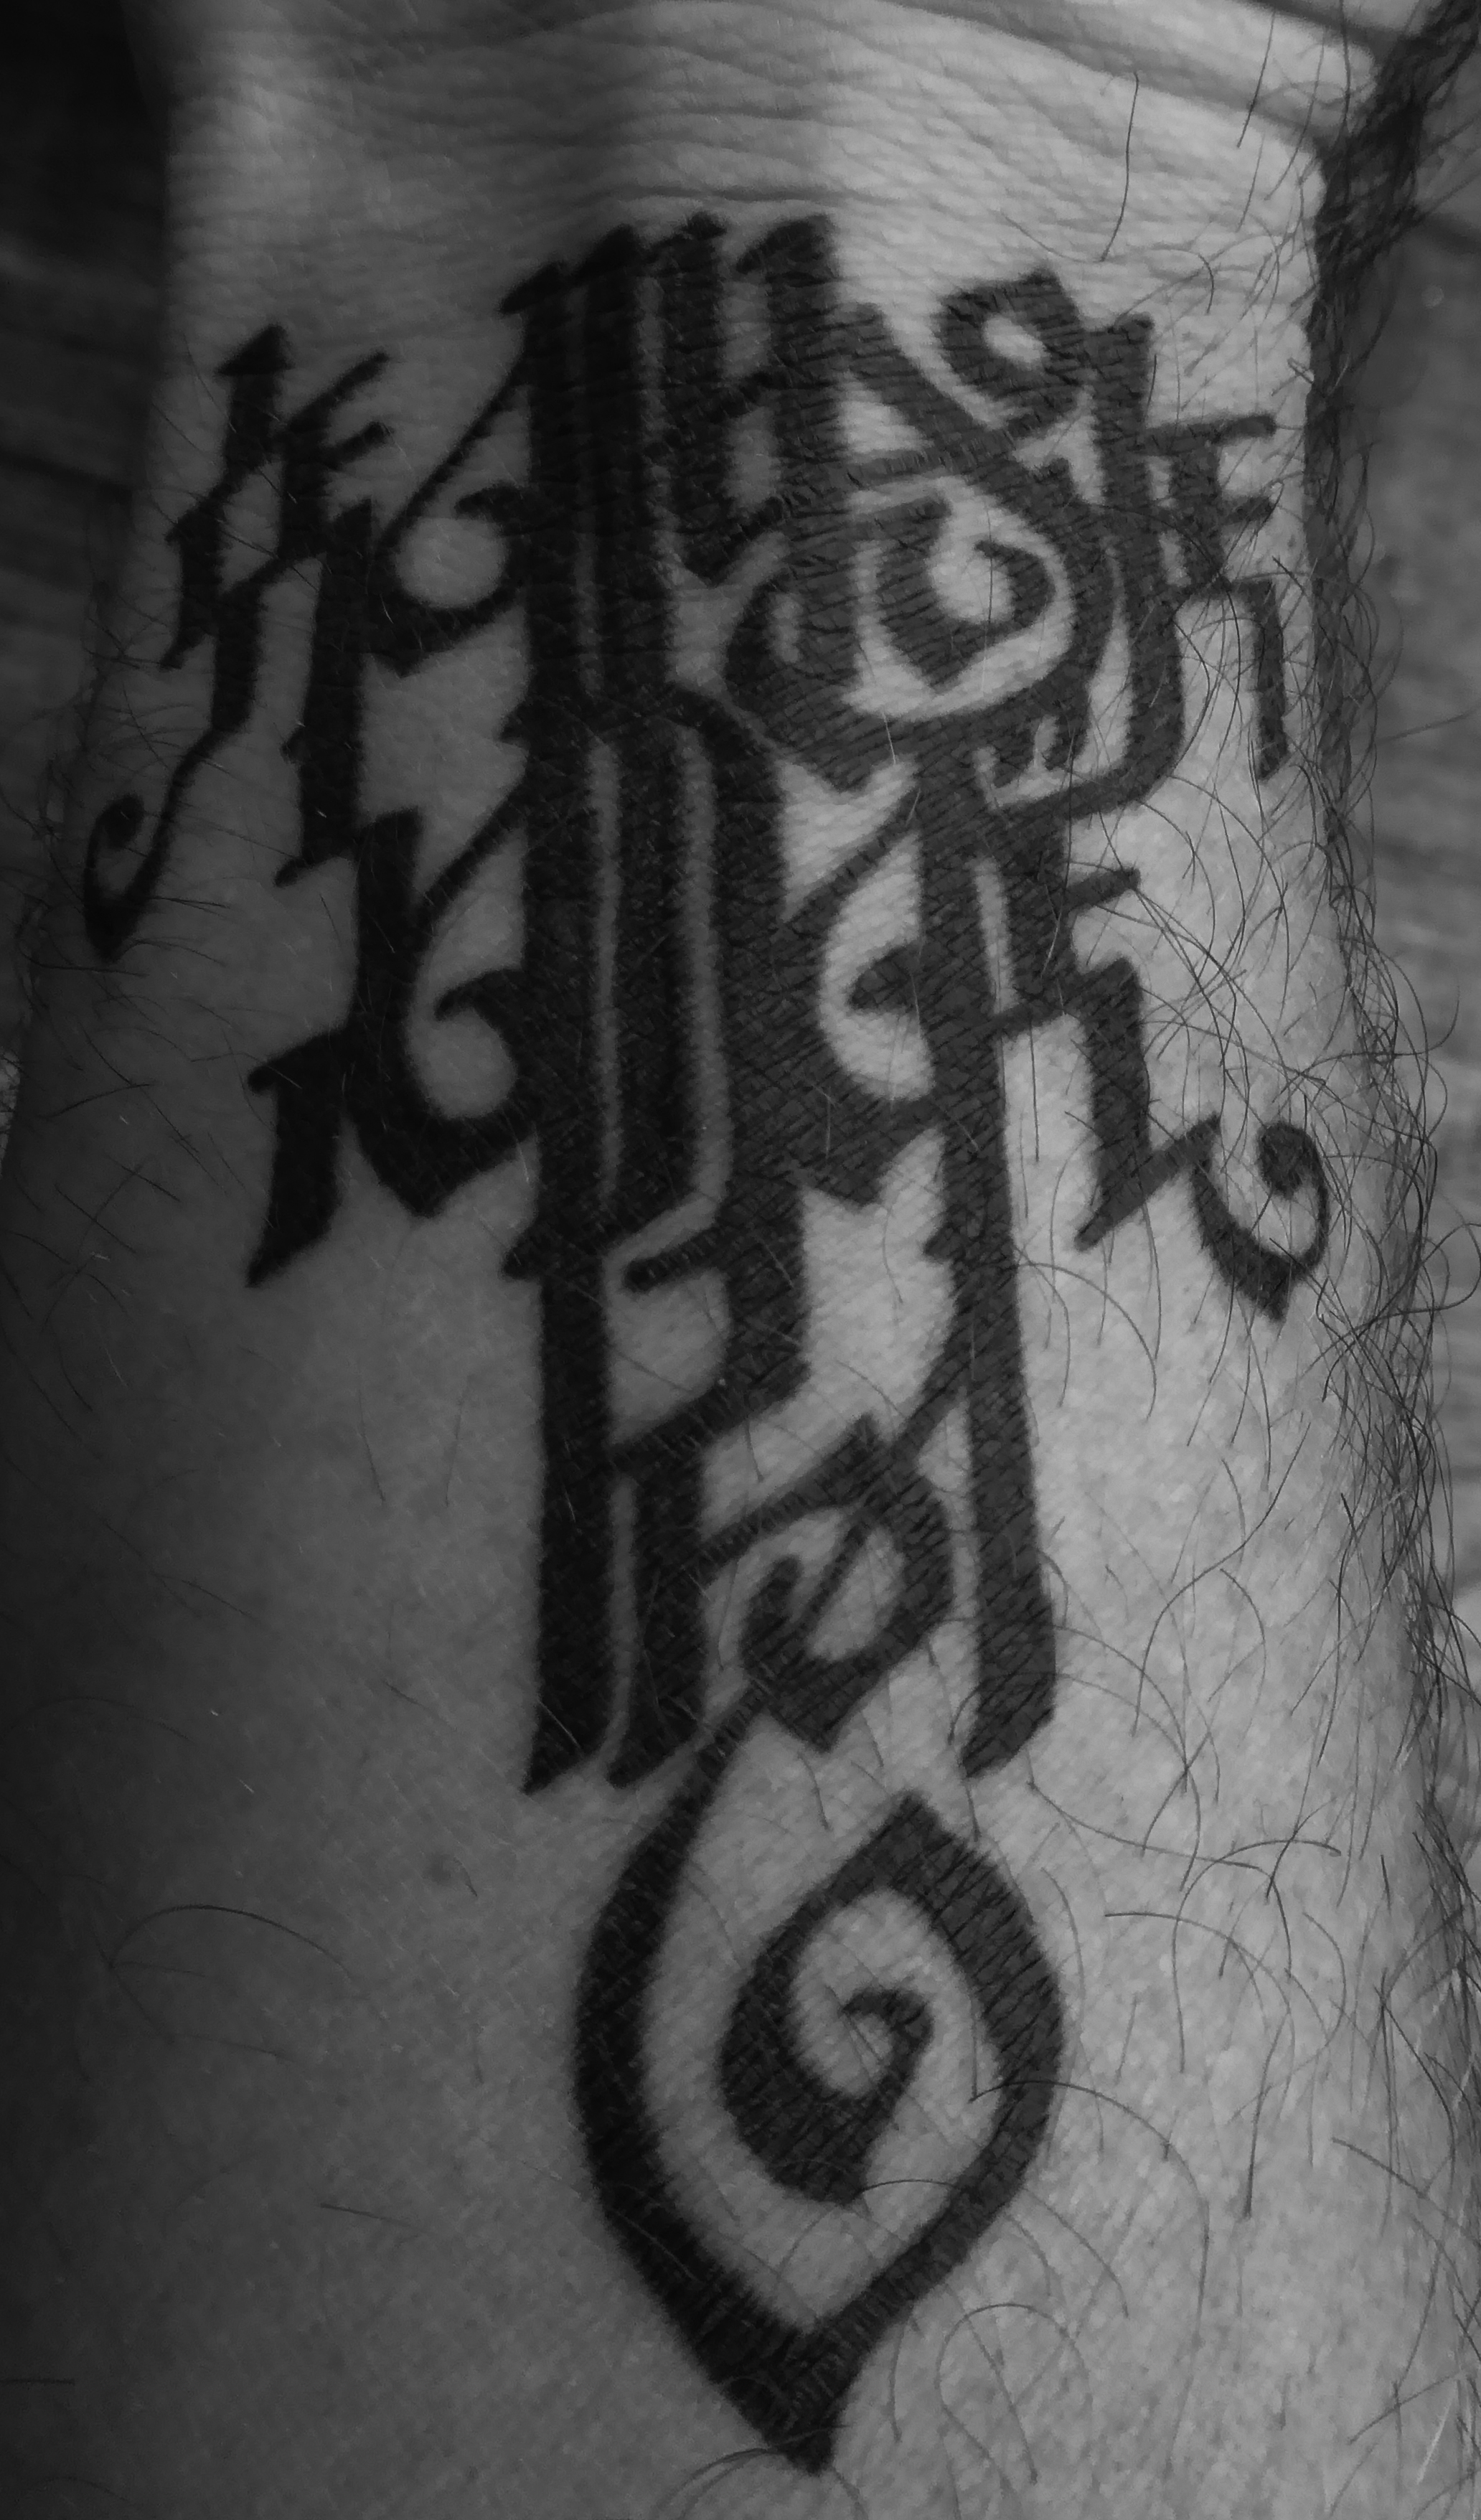 Nametattoo